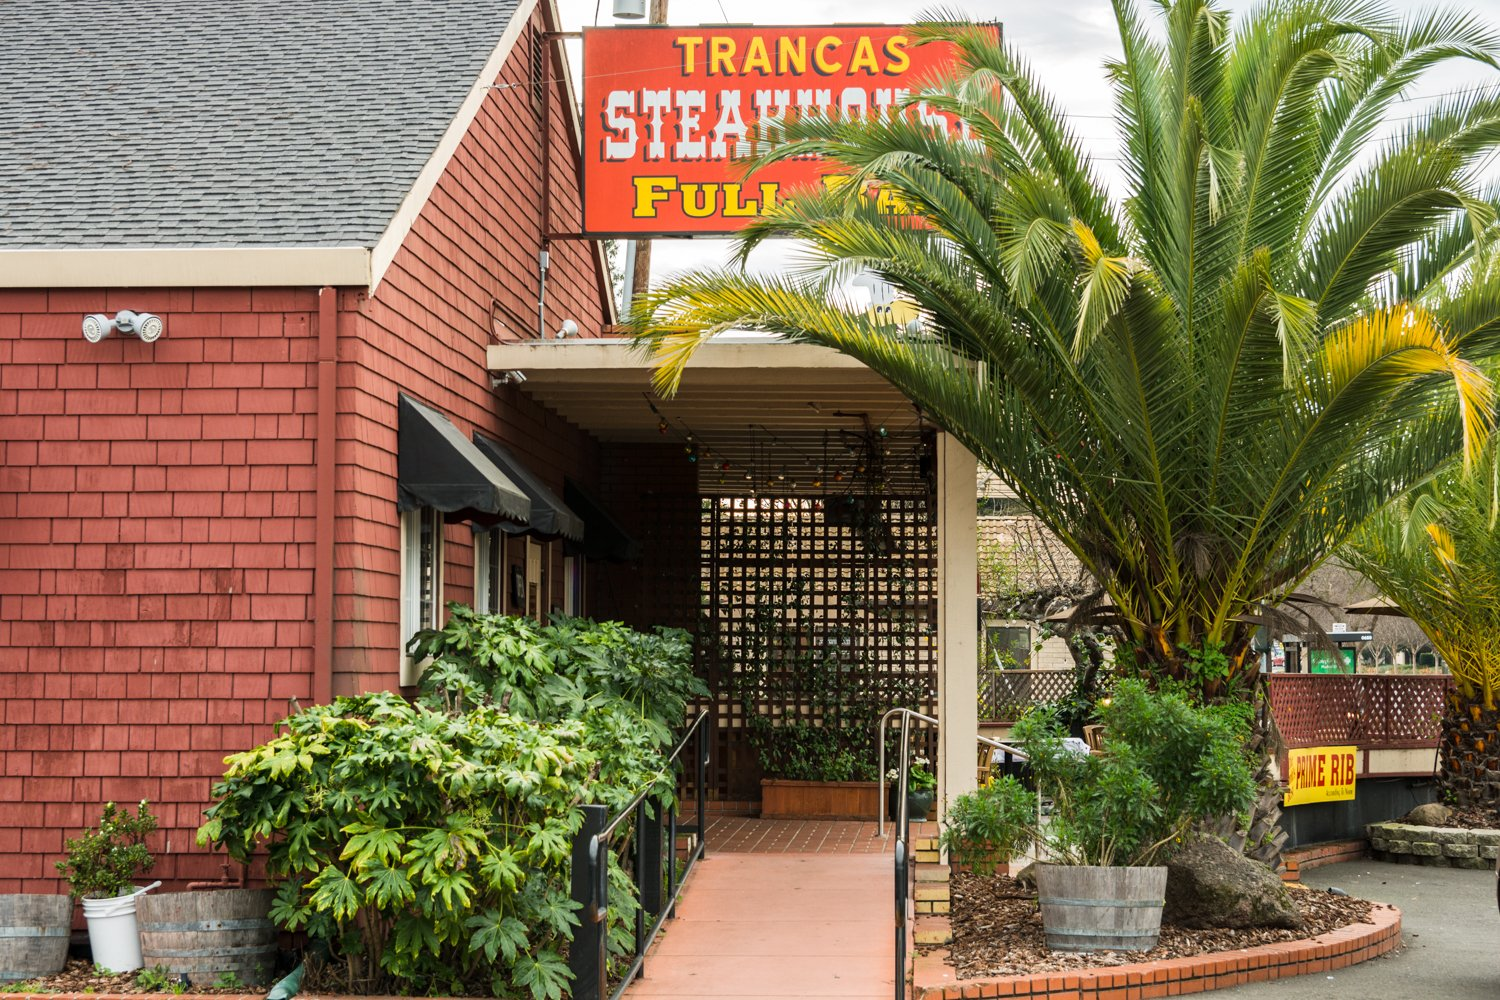 Trancas Steakhouse exterior